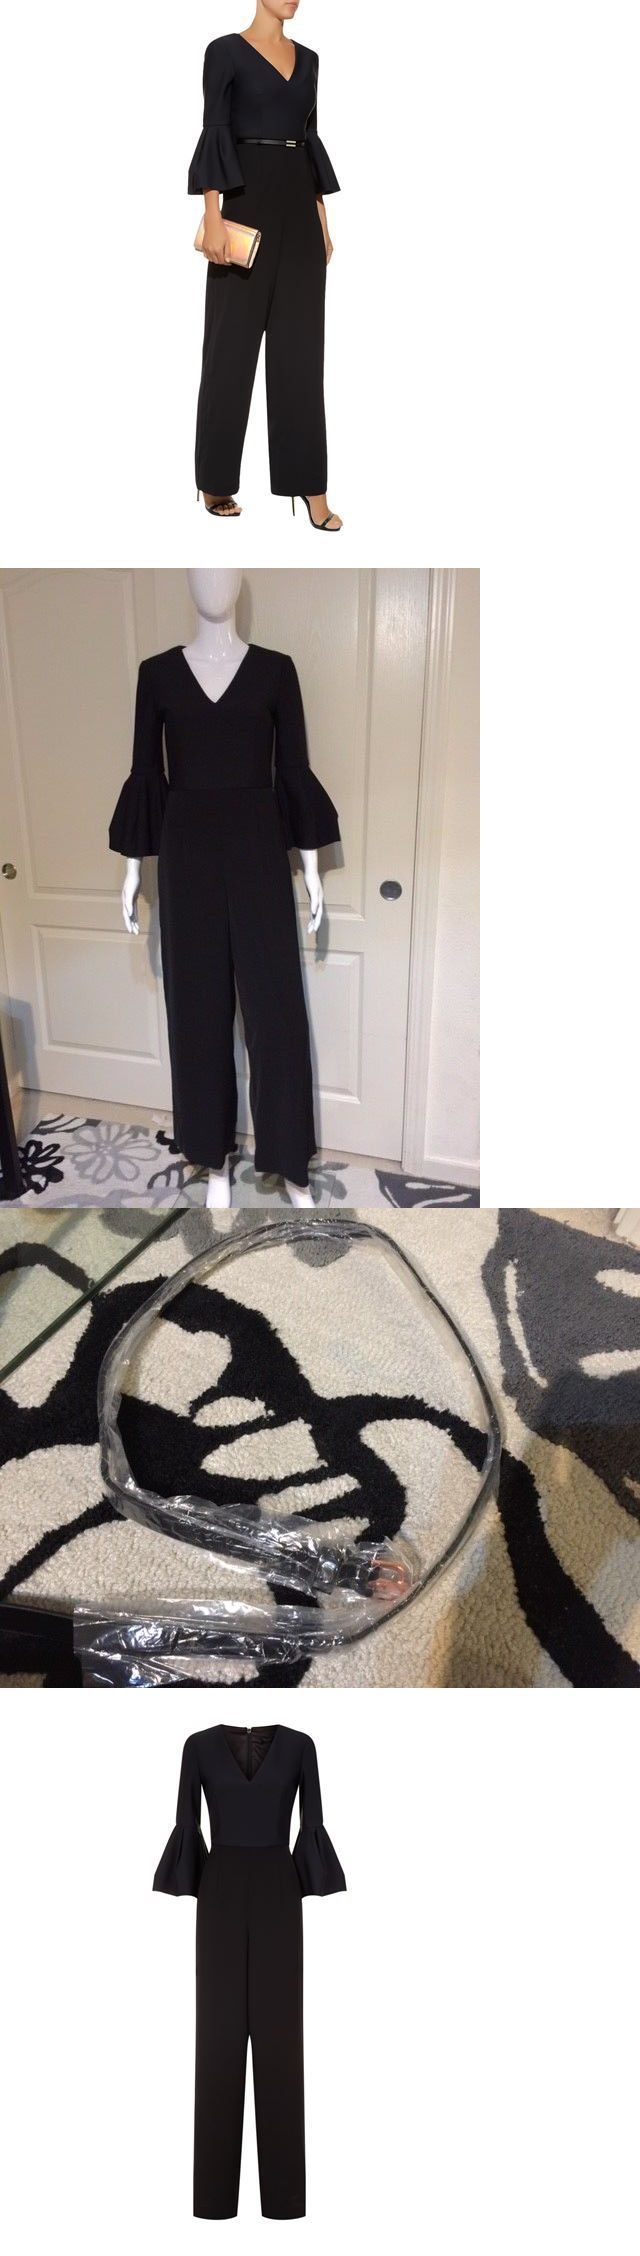 4f8b306d10c Jumpsuits and Rompers 3009  Ted Baker Theah Full Flared Sleeve Jumpsuit In  Black Wide Leg With Belt New  349 -  BUY IT NOW ONLY   169 on eBay!